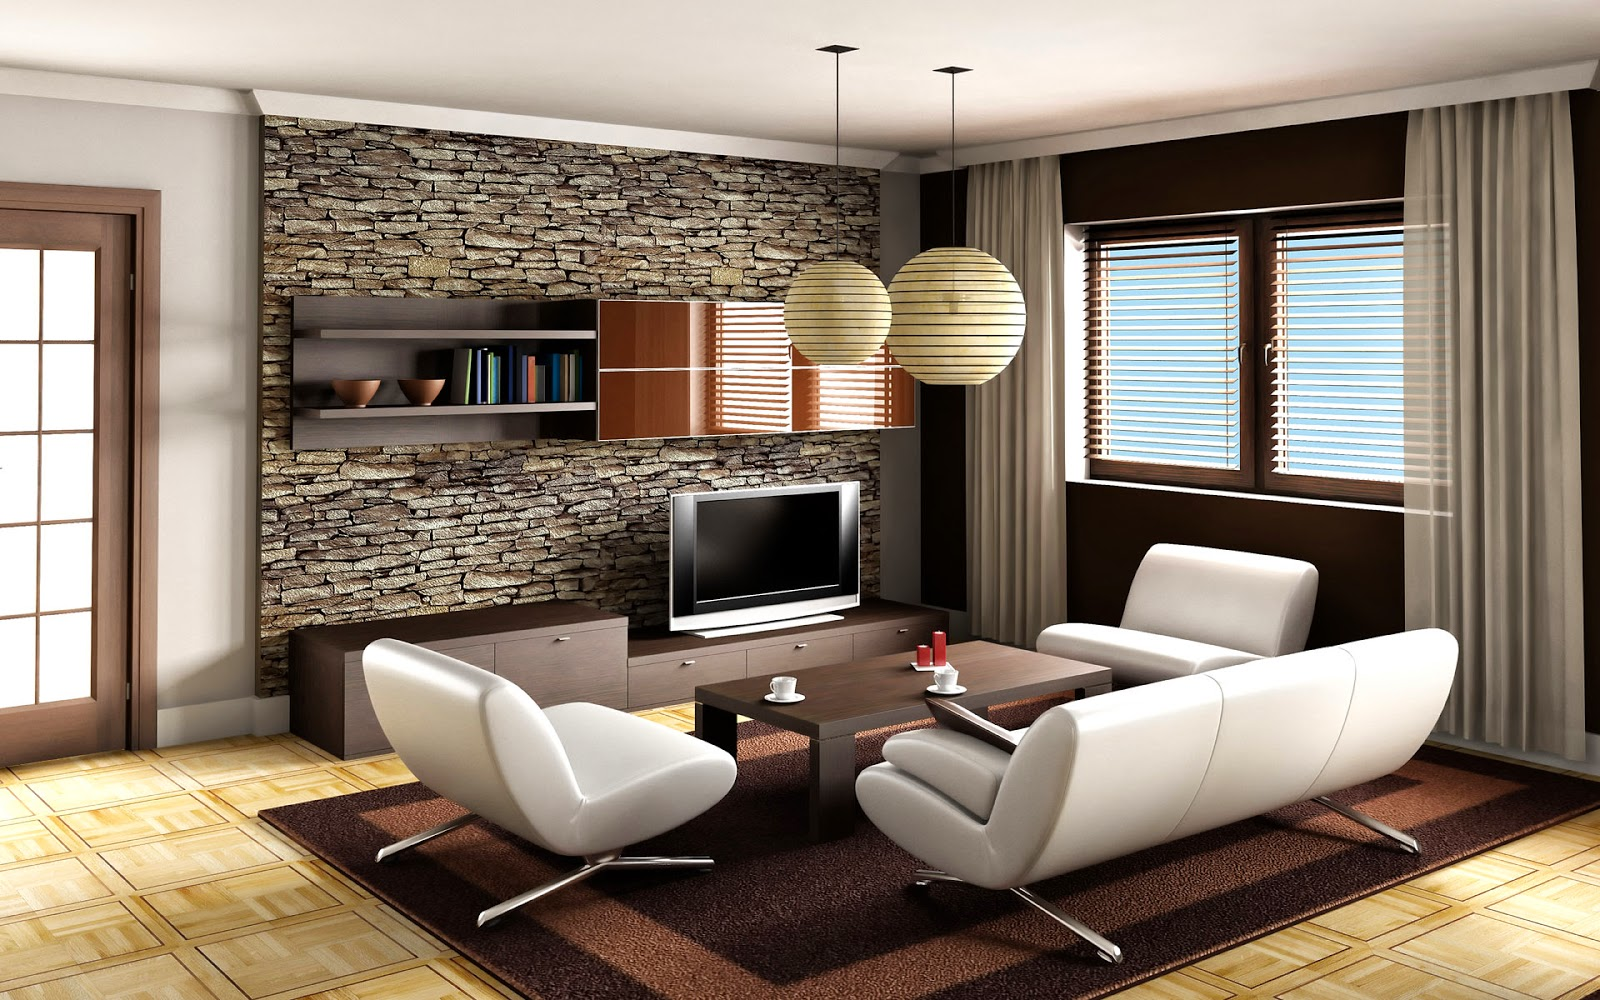 2 living room decor ideas brown leather sofa home for Room design hd image